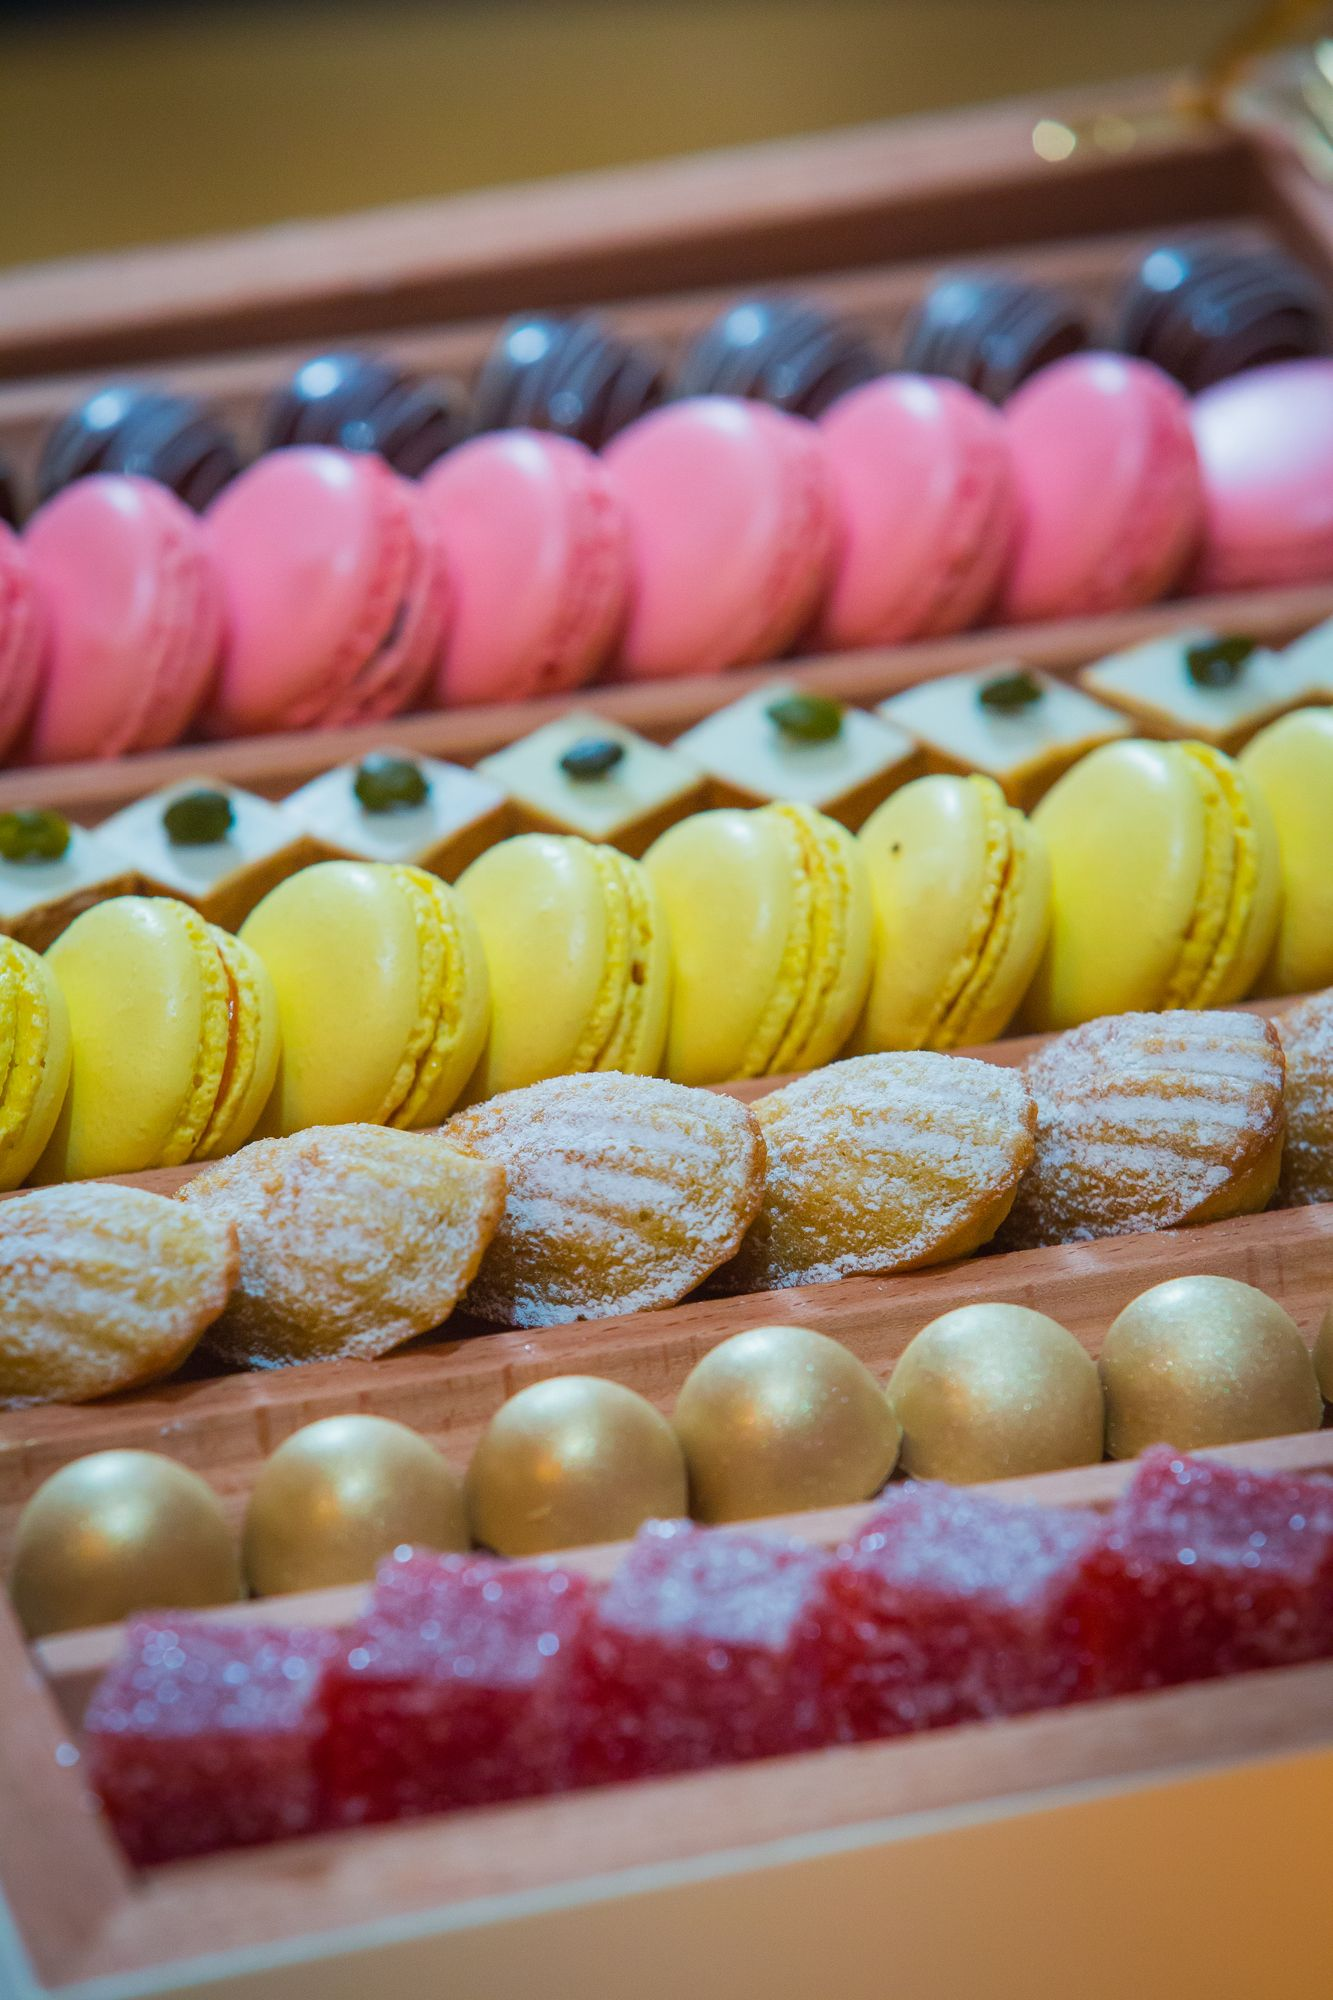 Delicious Homemade Petit Four Selection of chocolates, macarons and jellies. Available at the Gresham Restaurant.